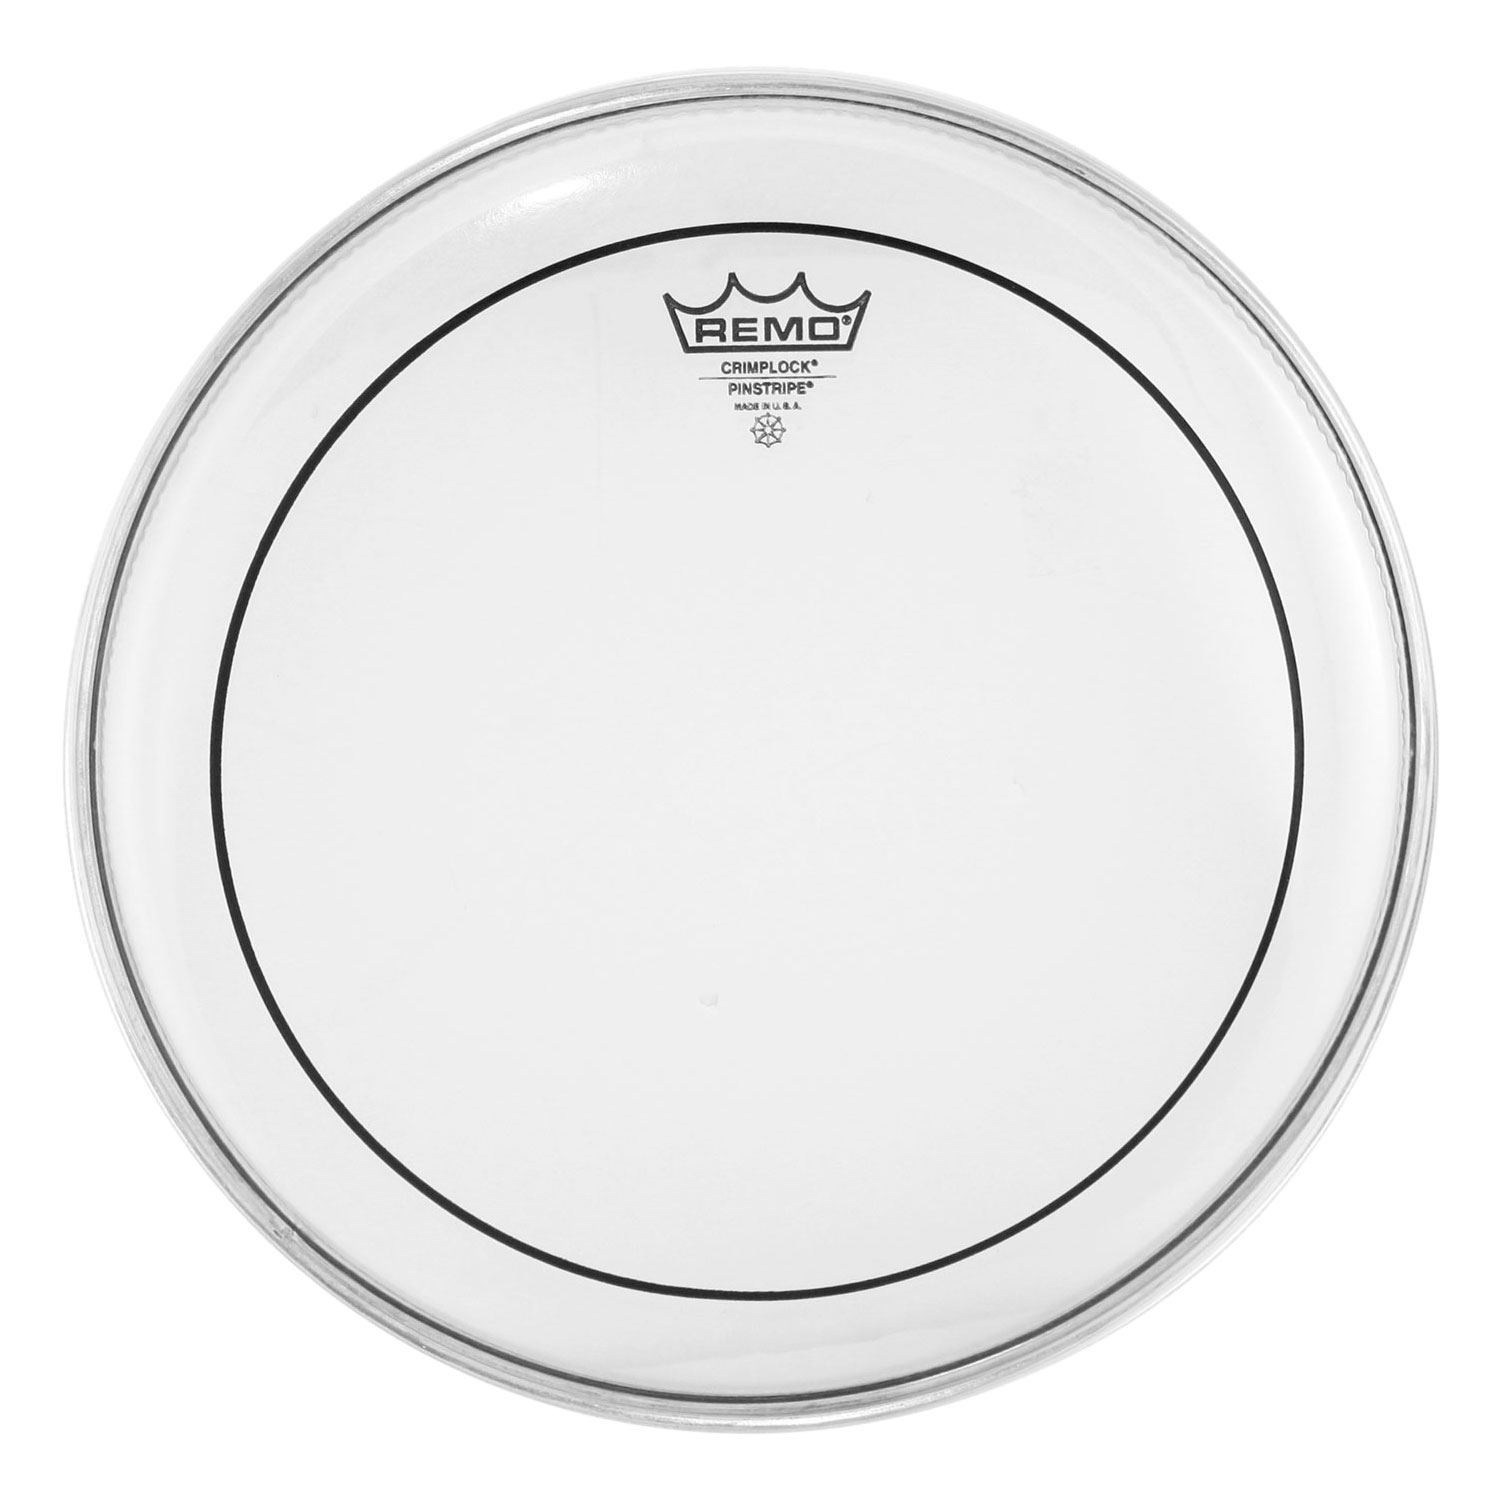 "Remo 13"" Pinstripe Clear Crimplock Marching Tenor Drum Head"